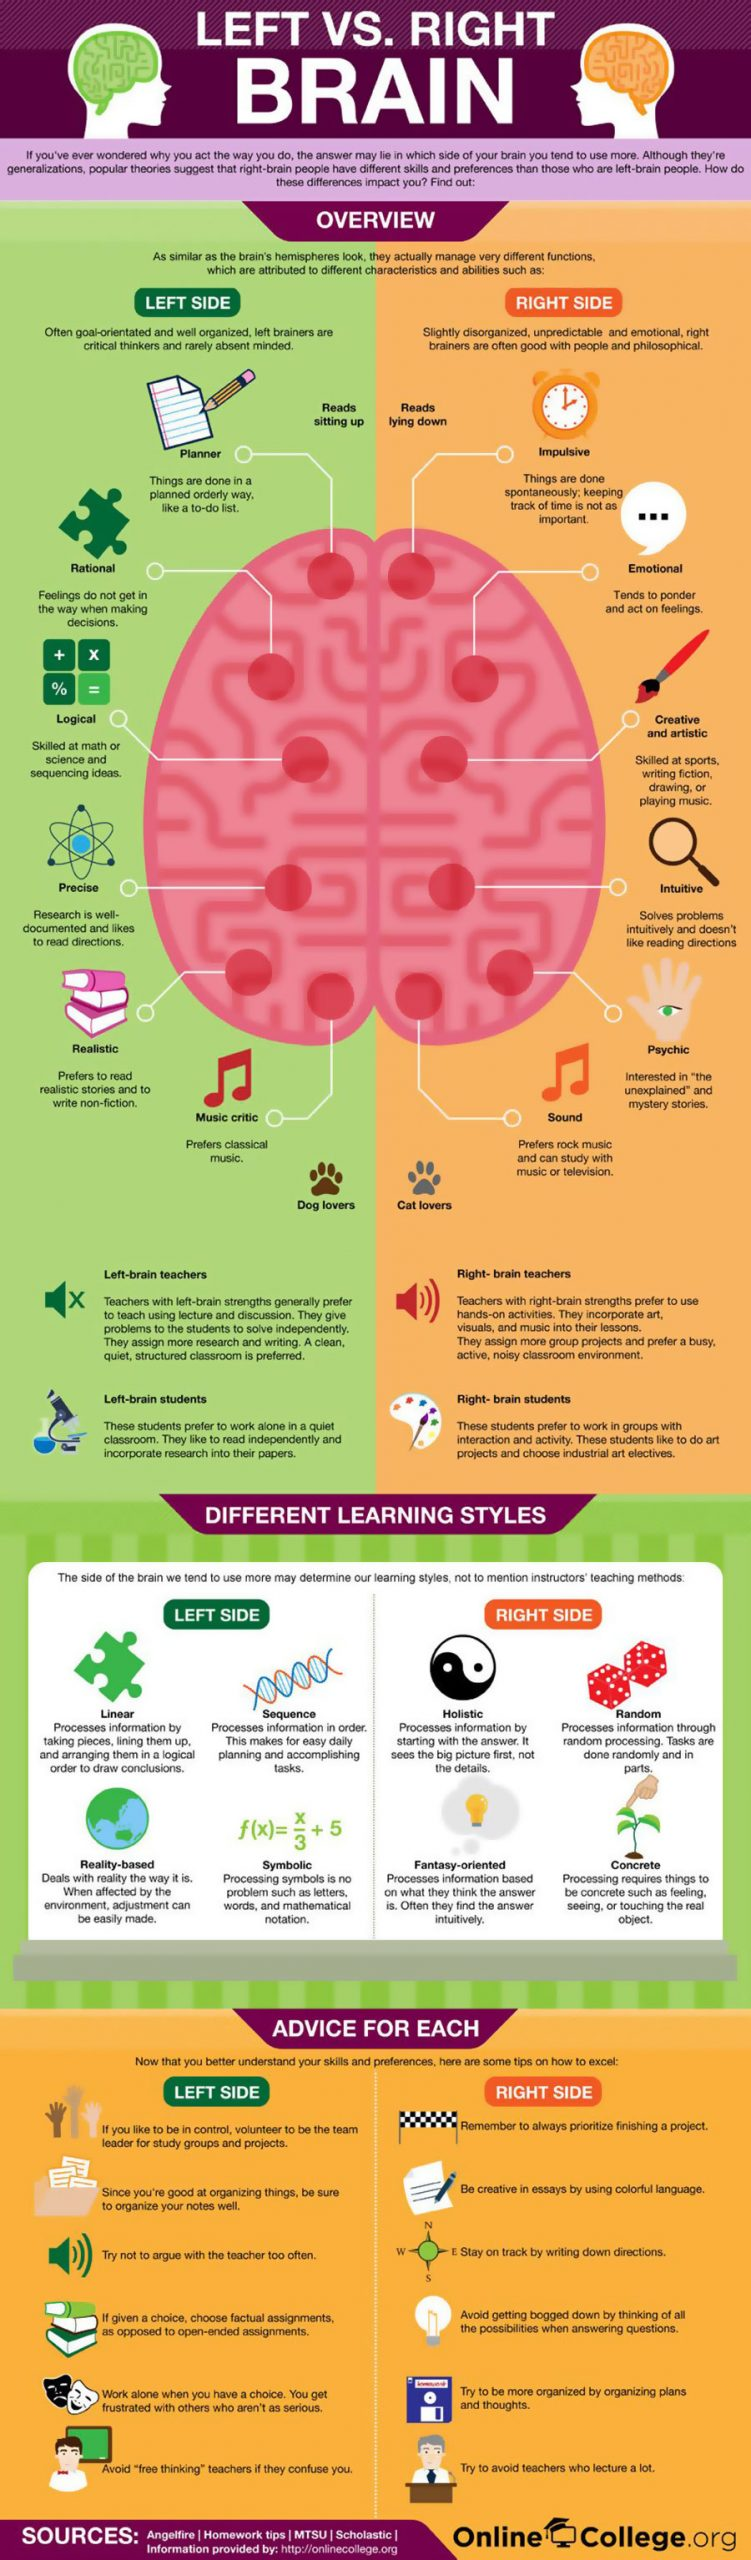 Left Vs Right Brain Infographic